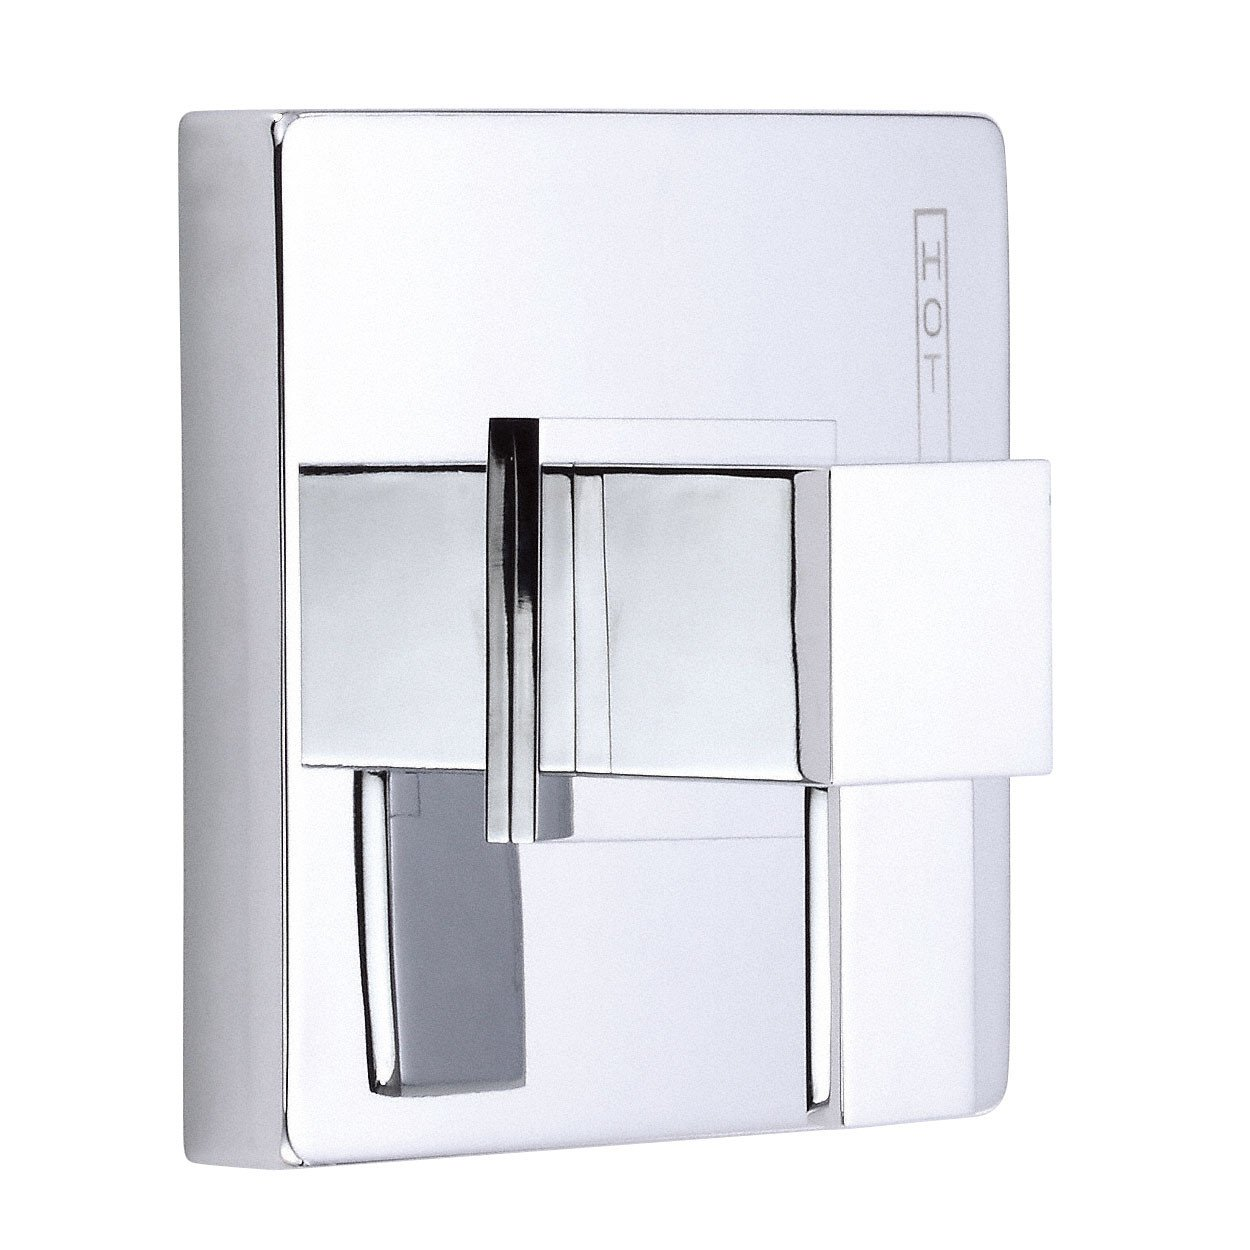 Danze Reef Chrome Single Handle Pressure Balance Square Shower Faucet Control INCLUDES Rough-in Valve